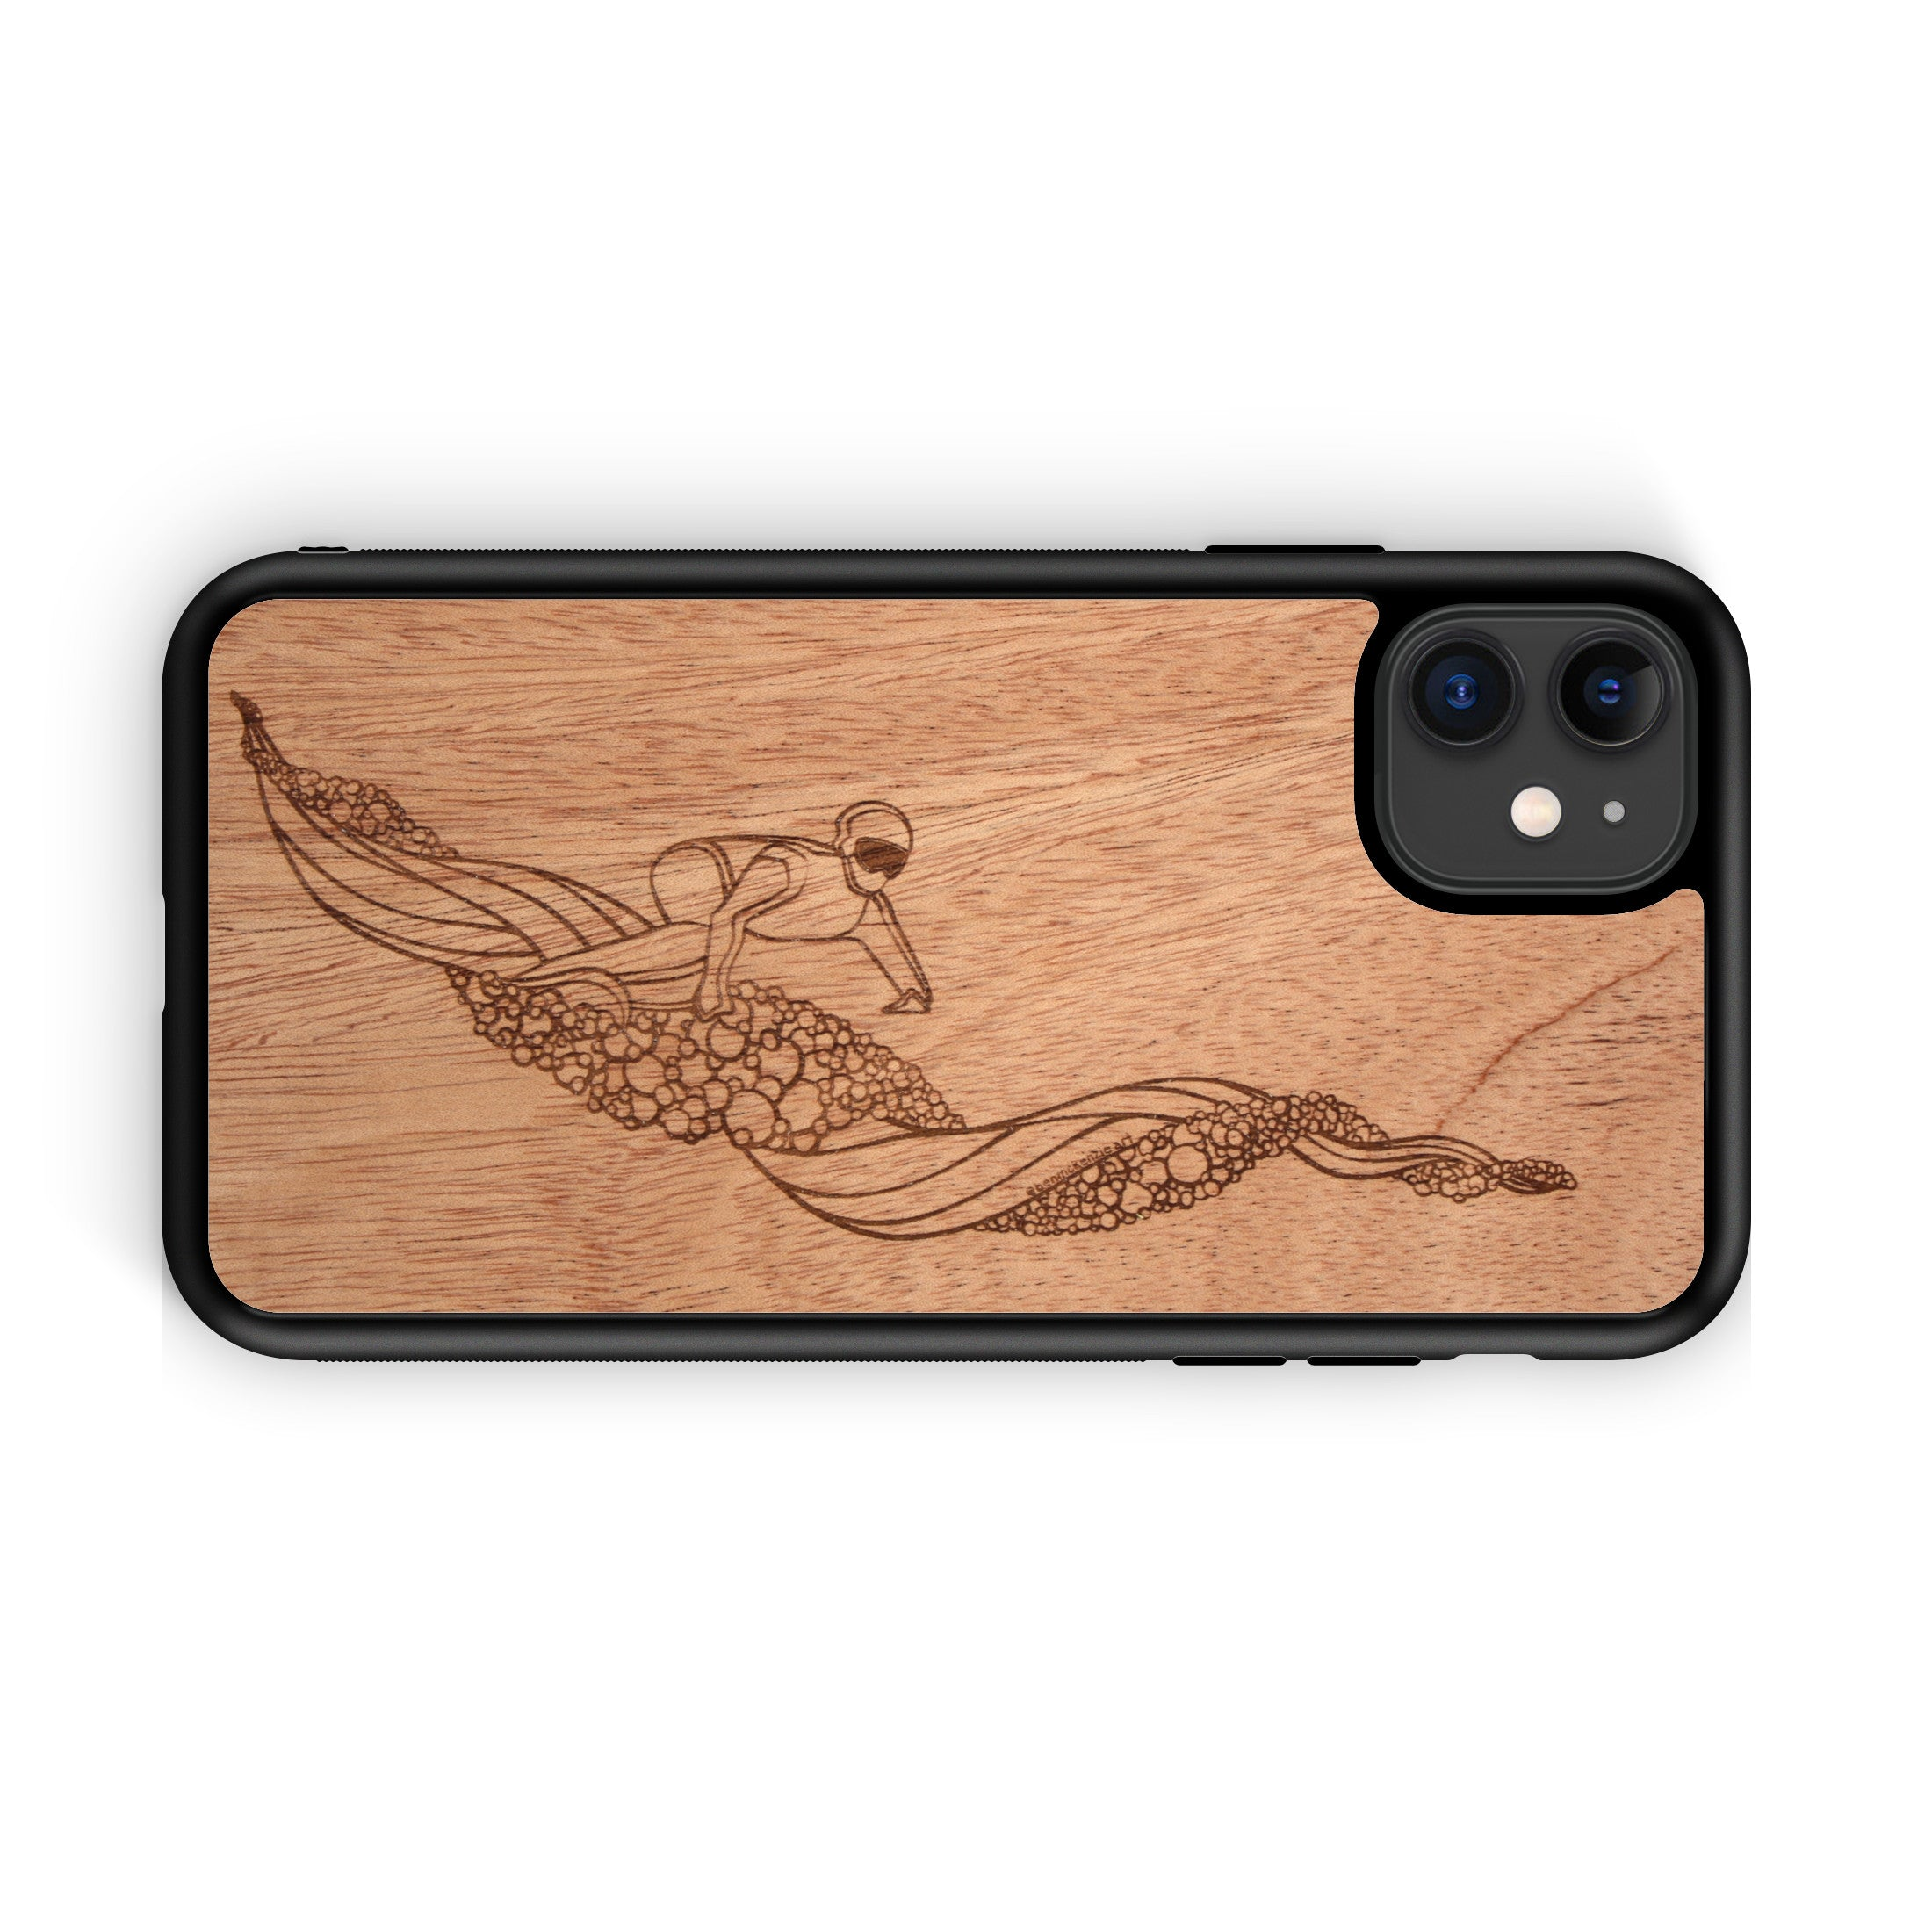 Wooden Phone Case (Outdoor Adventure - Snowboarder Landscape)